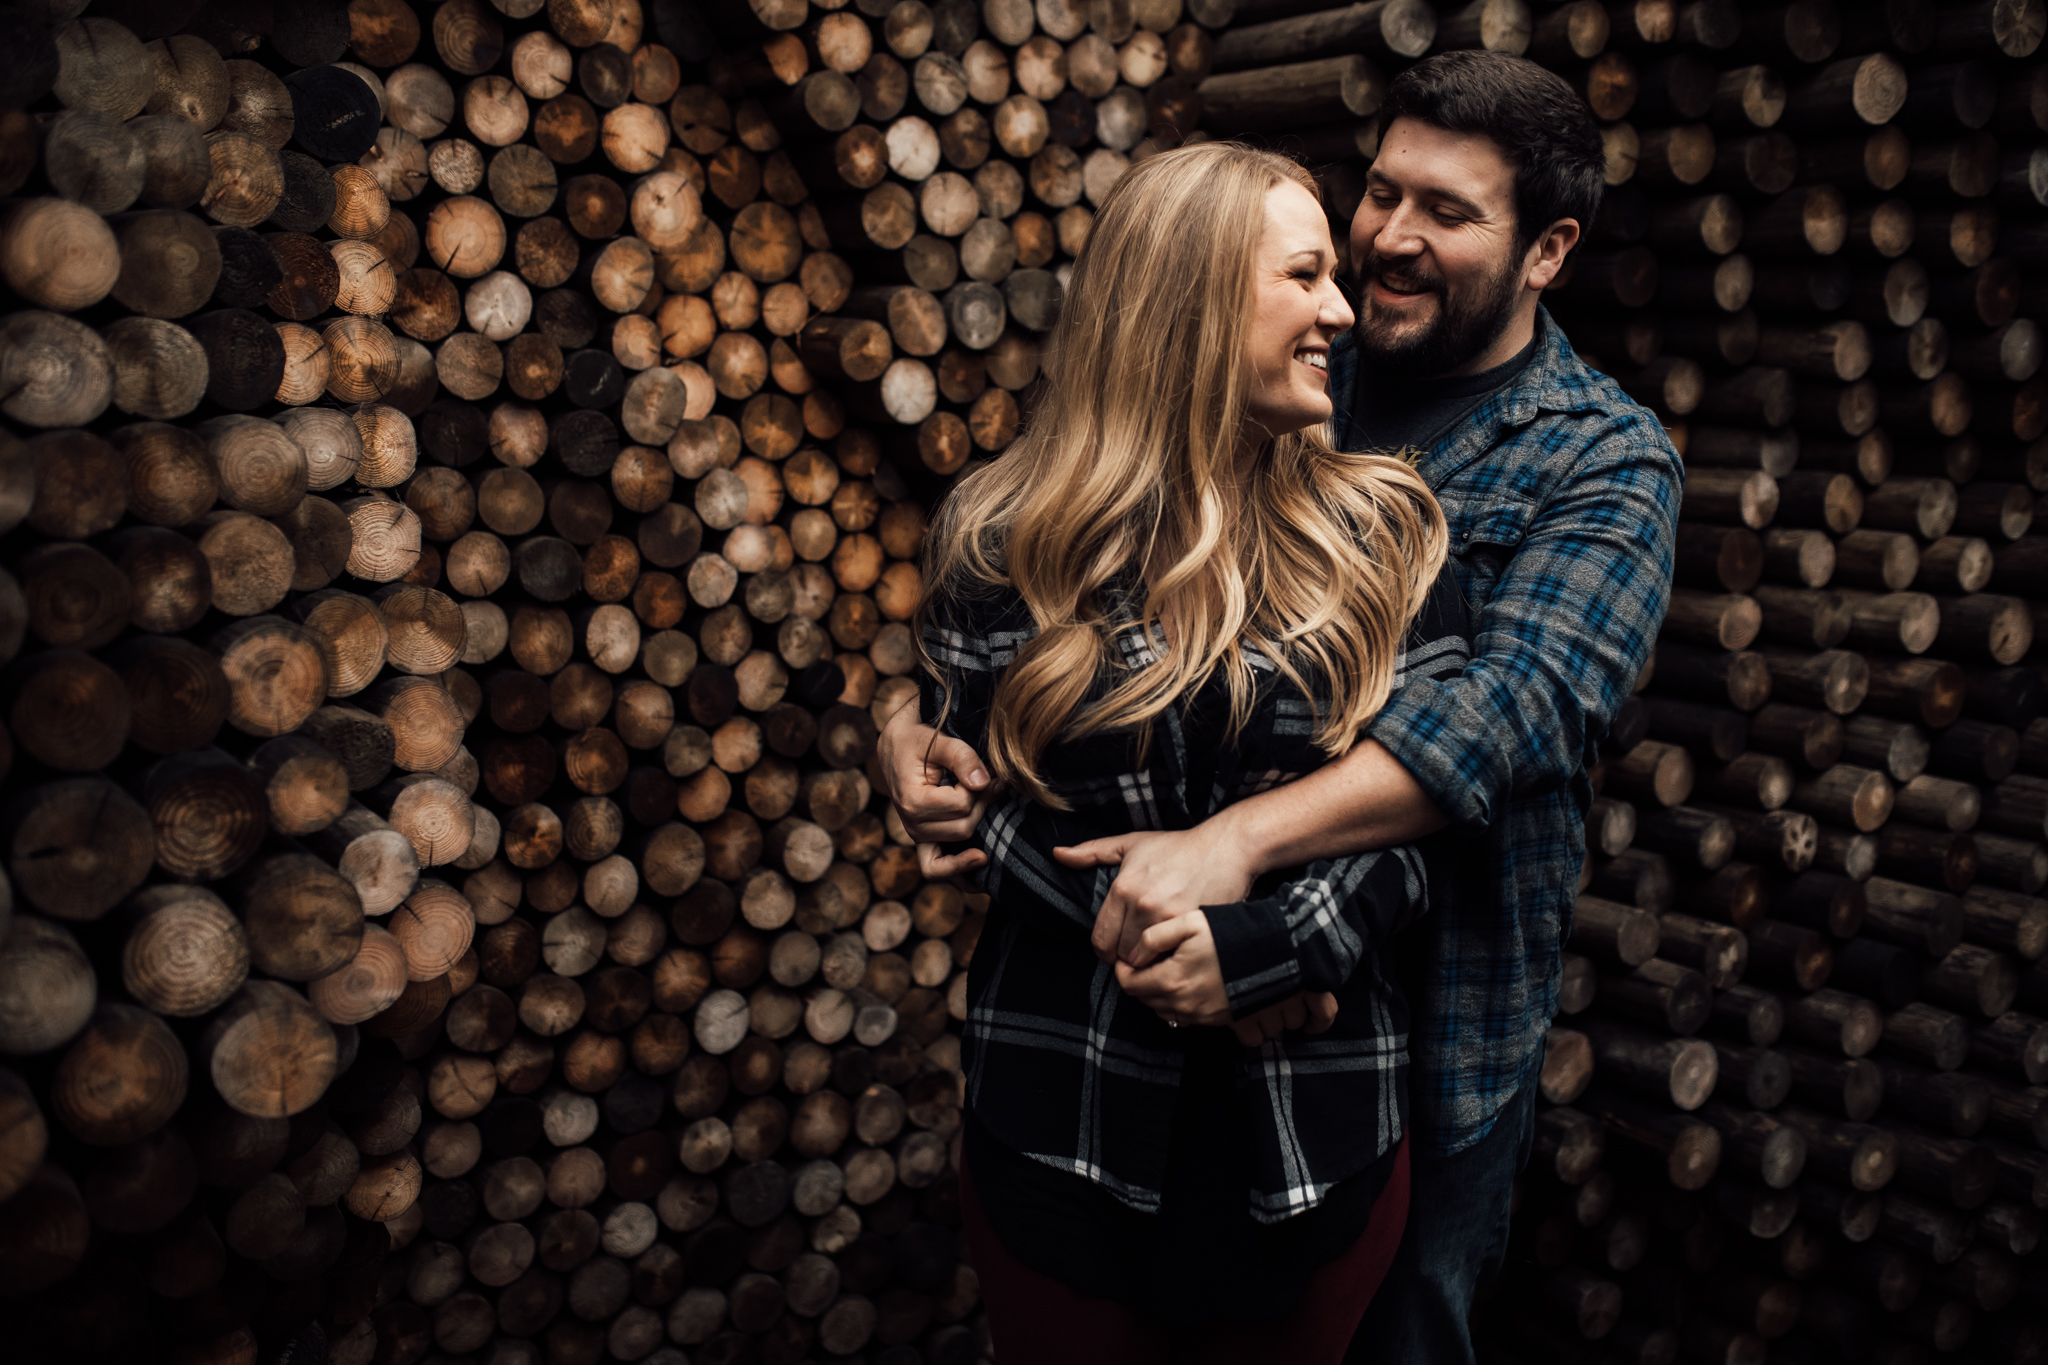 wiseacre-brewing-wedding-photographer-the-warmth-around-you-cassie-cook-photography (27 of 64).jpg